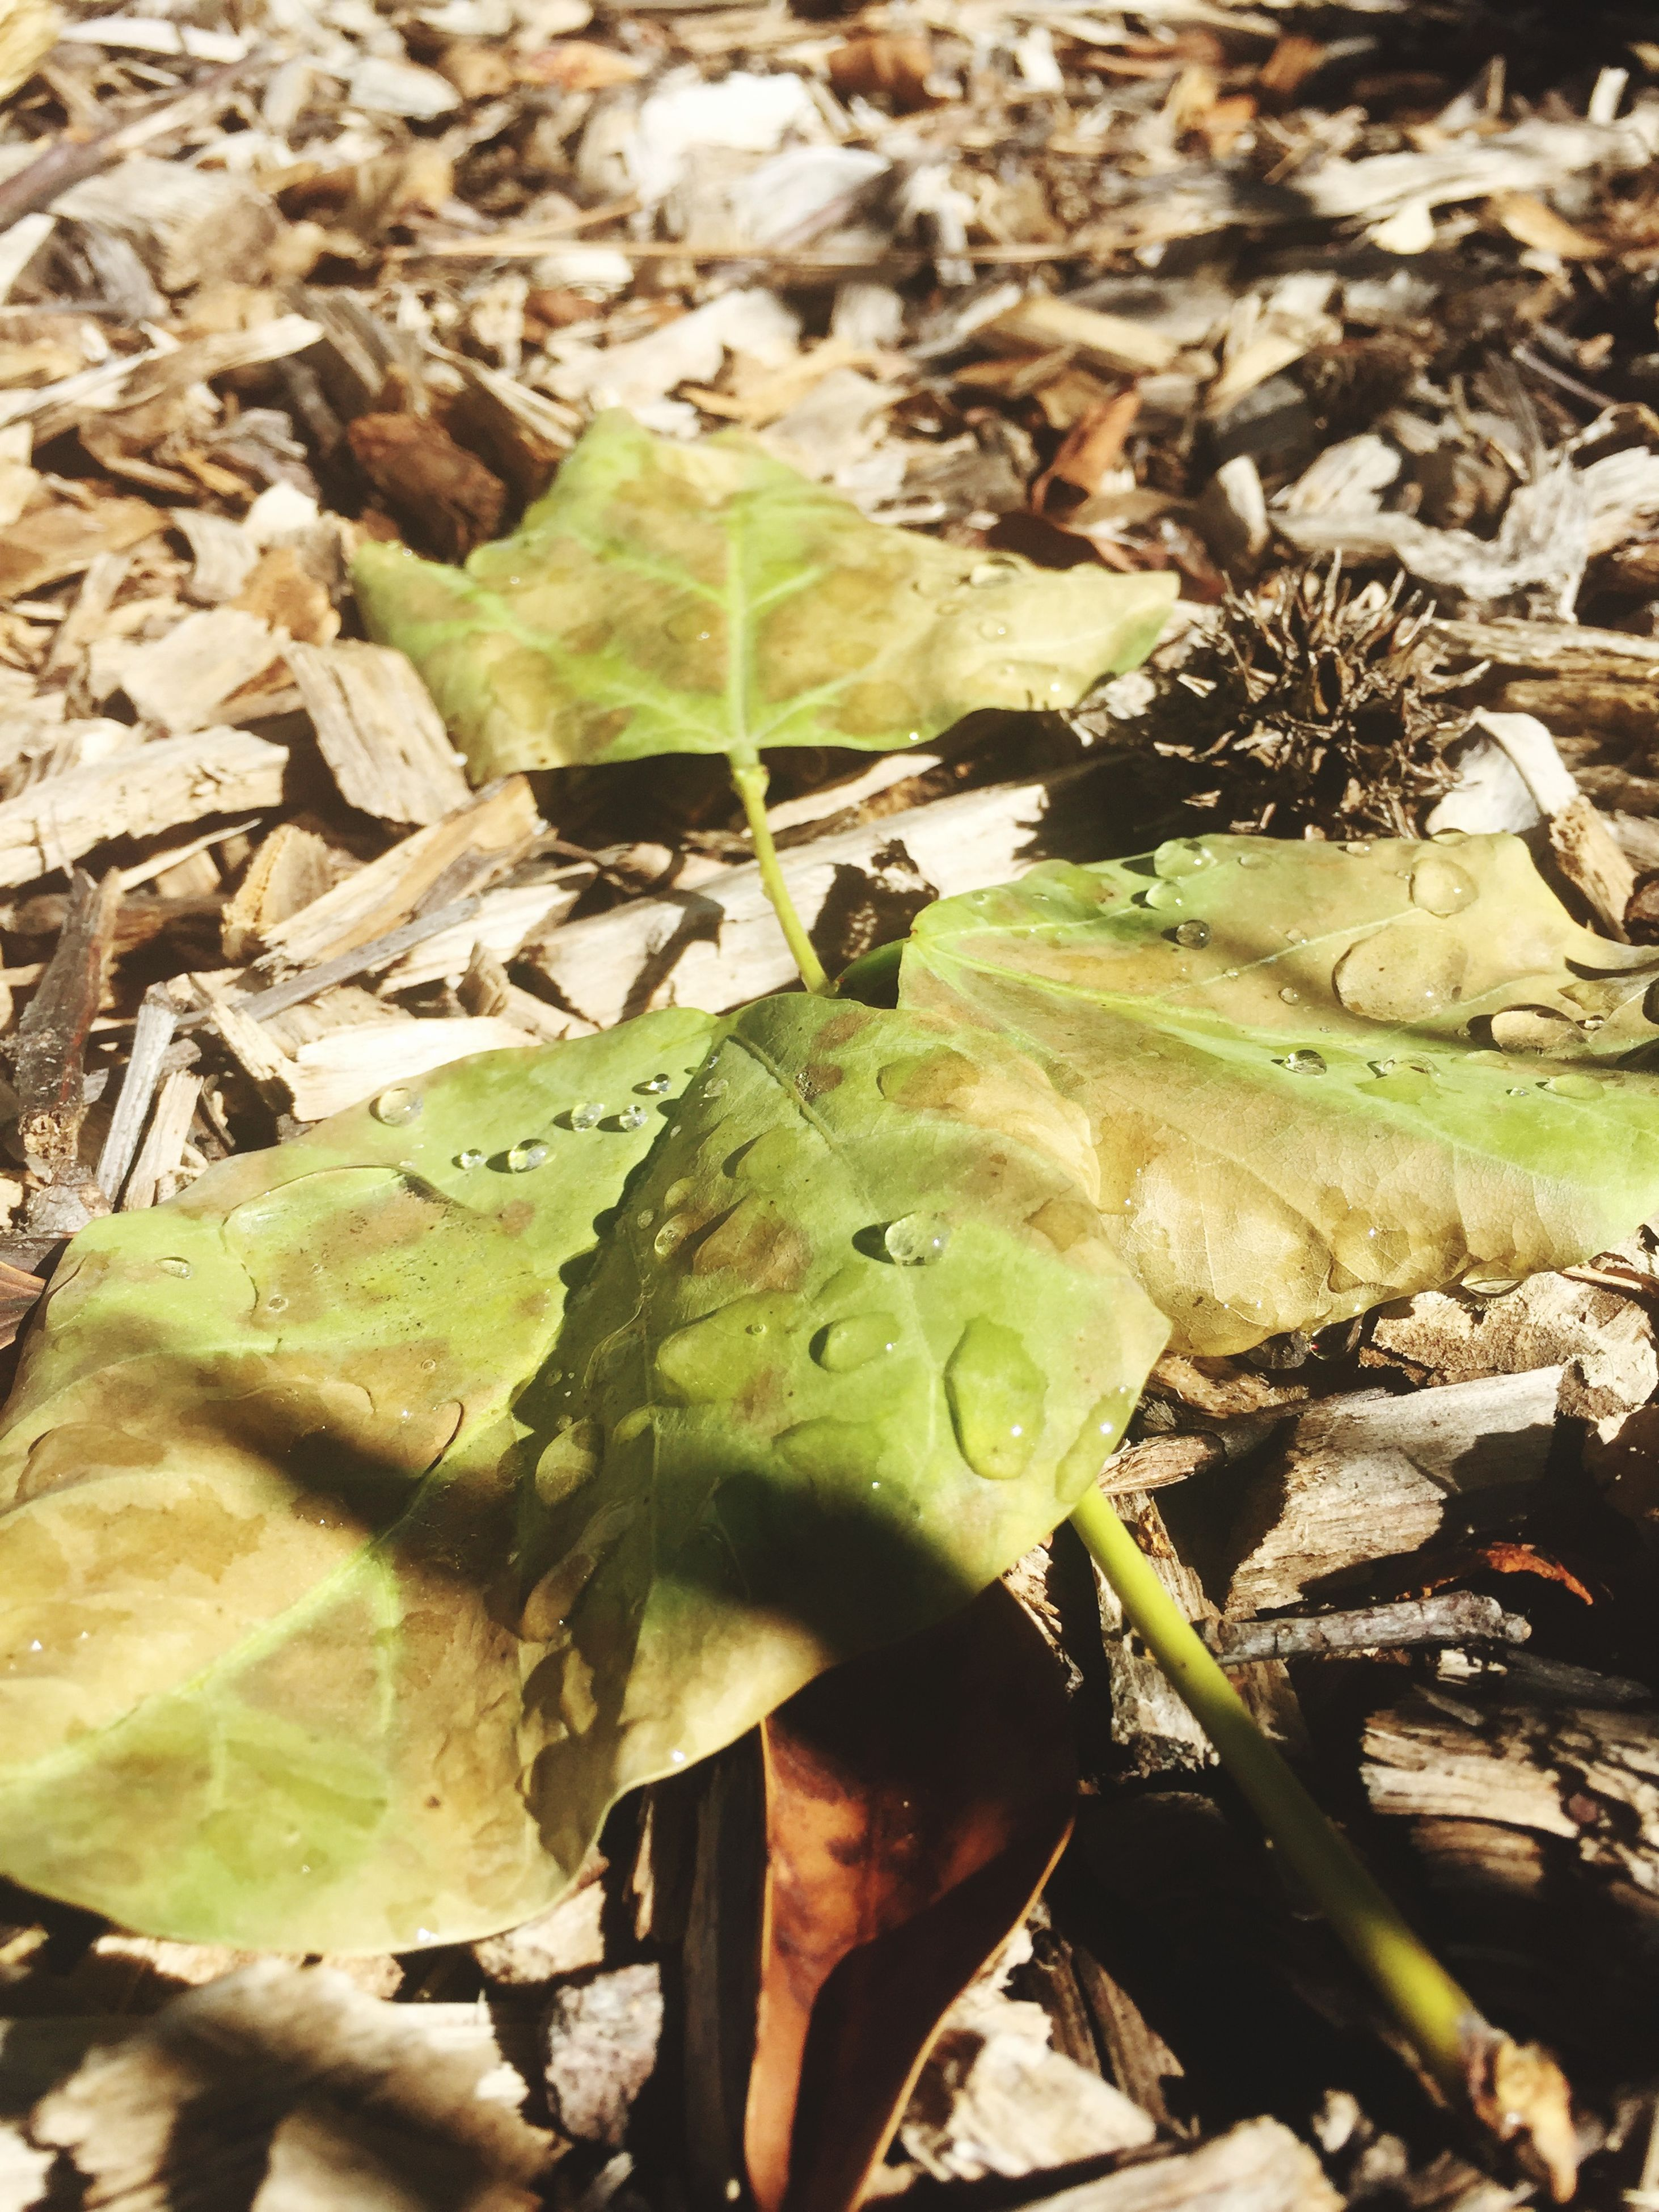 leaf, close-up, green color, nature, high angle view, field, leaves, growth, plant, dry, day, outdoors, dirt, no people, focus on foreground, fallen, selective focus, ground, wood - material, sunlight